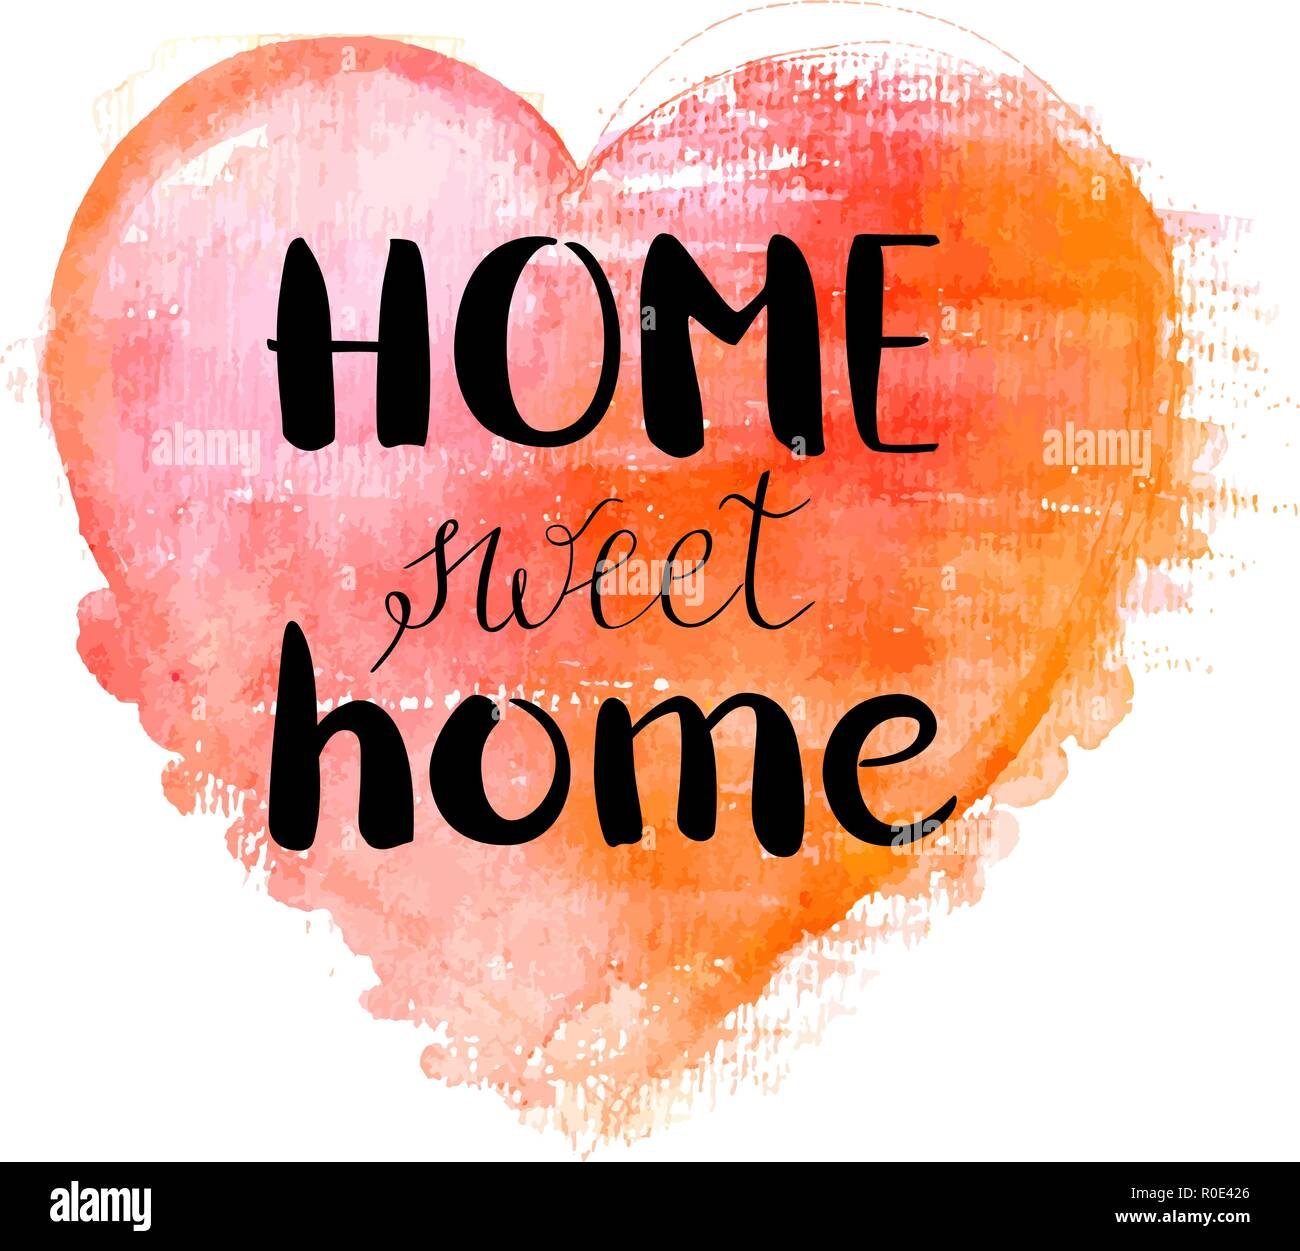 Home Sweet Home, a design with hand drawn lettering and a watercolor heart, vector illustration - Stock Vector